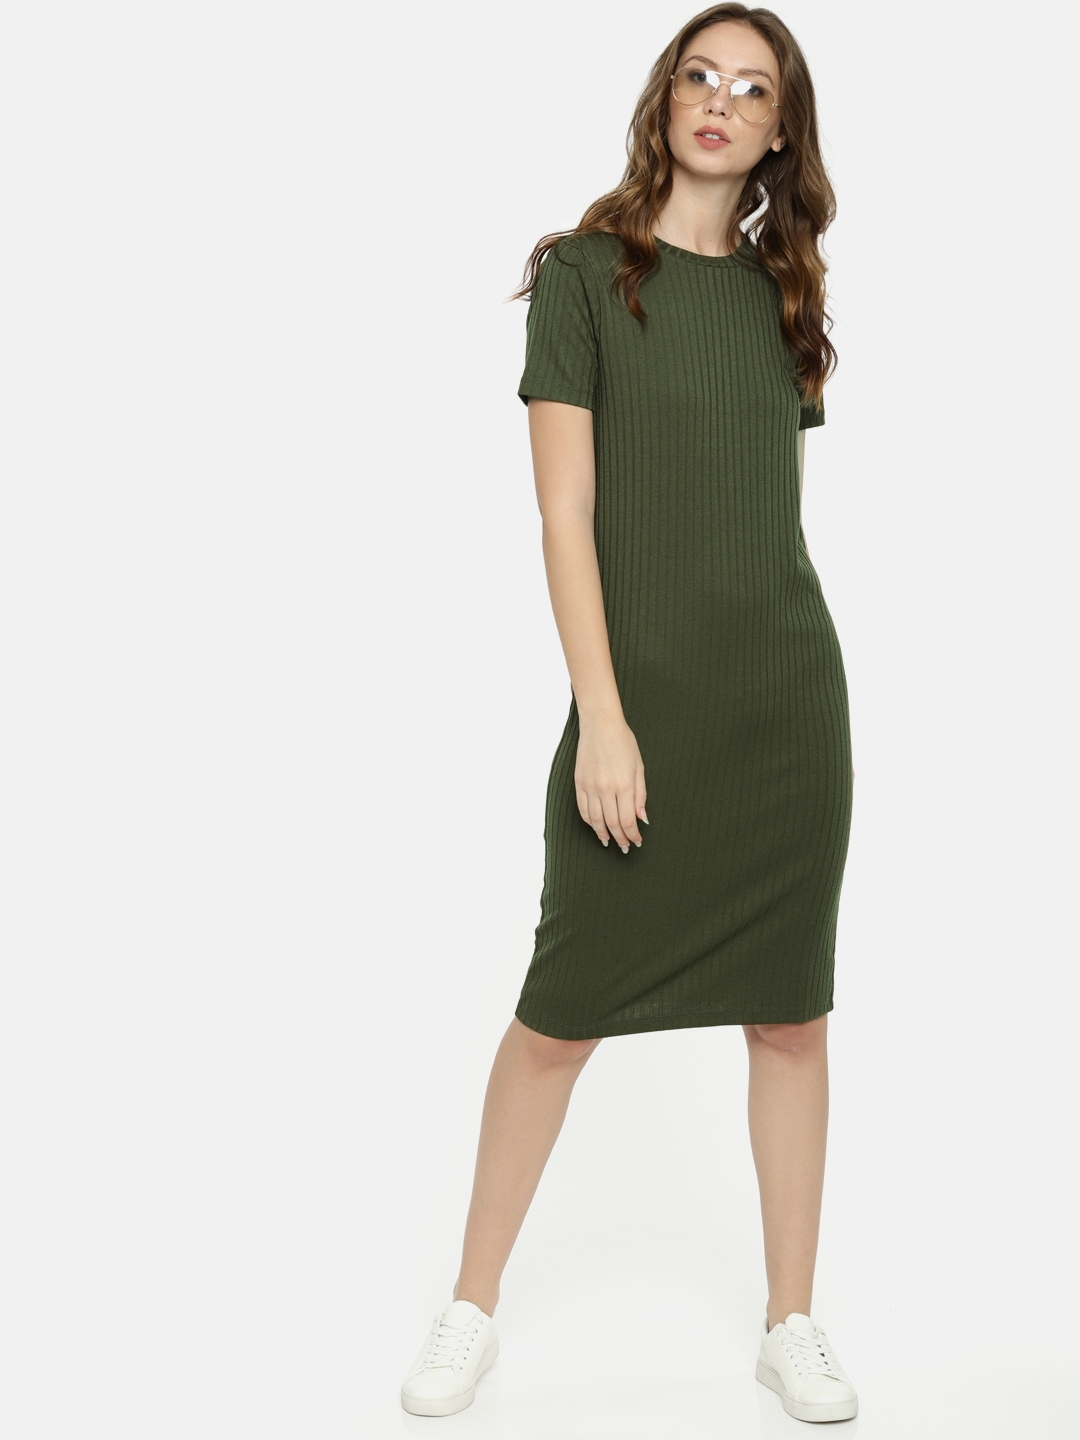 FOREVER 21 Women Olive Green Self Striped Sheath Dress